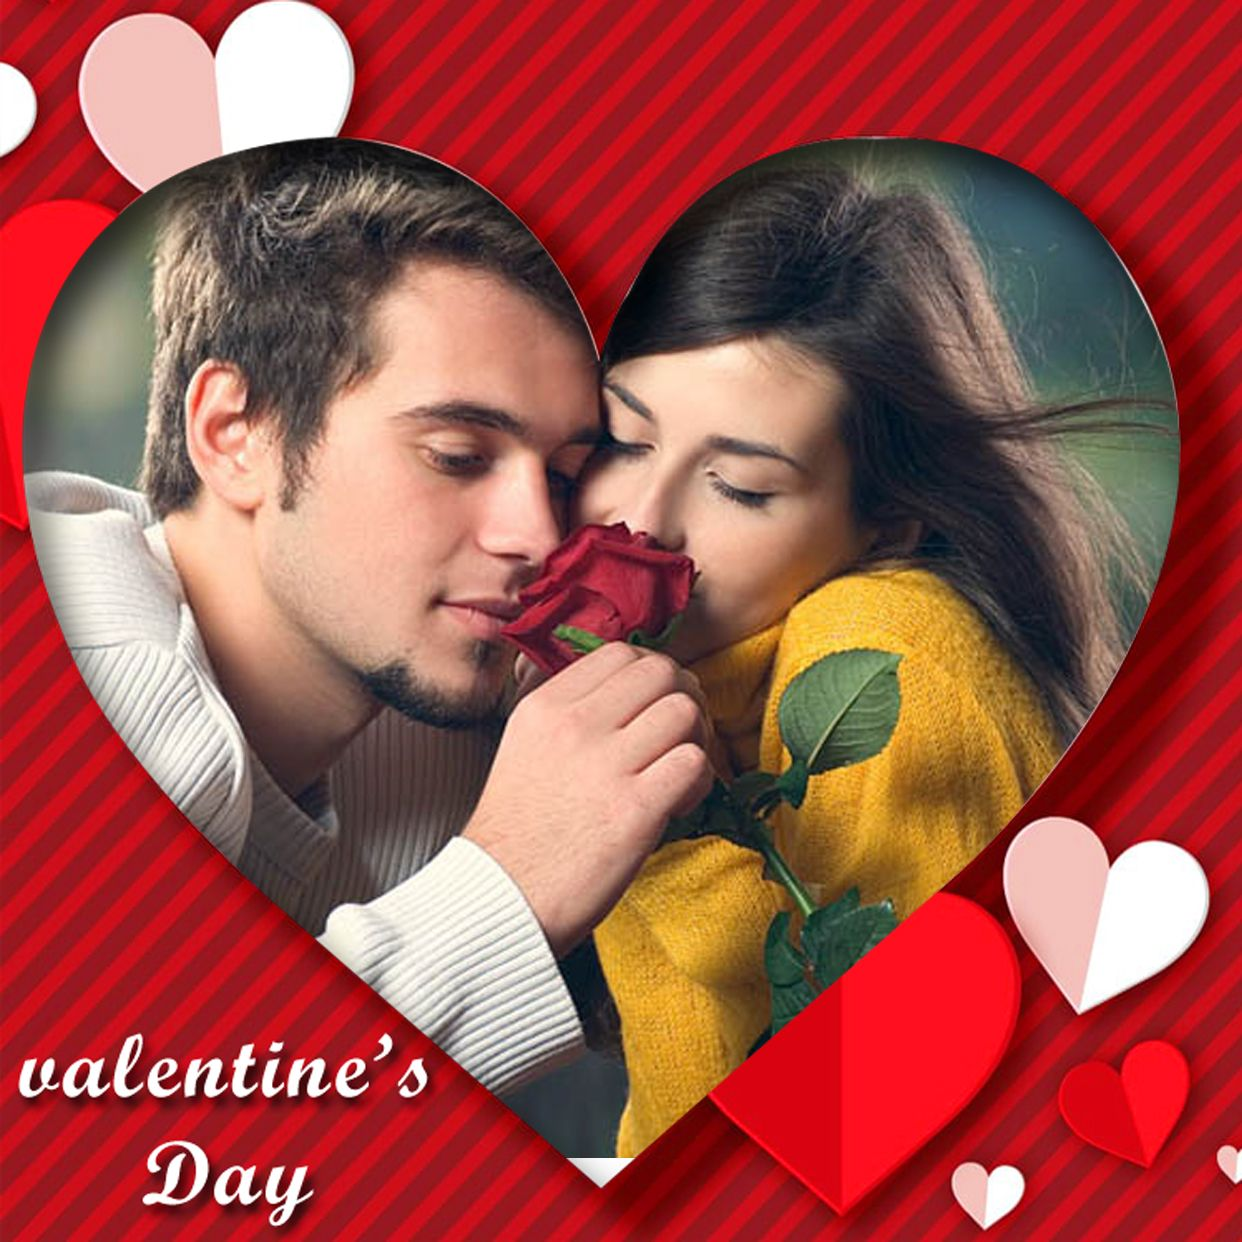 valentines day special frames app love valentines day photo frames free download on the - Heart Frame App